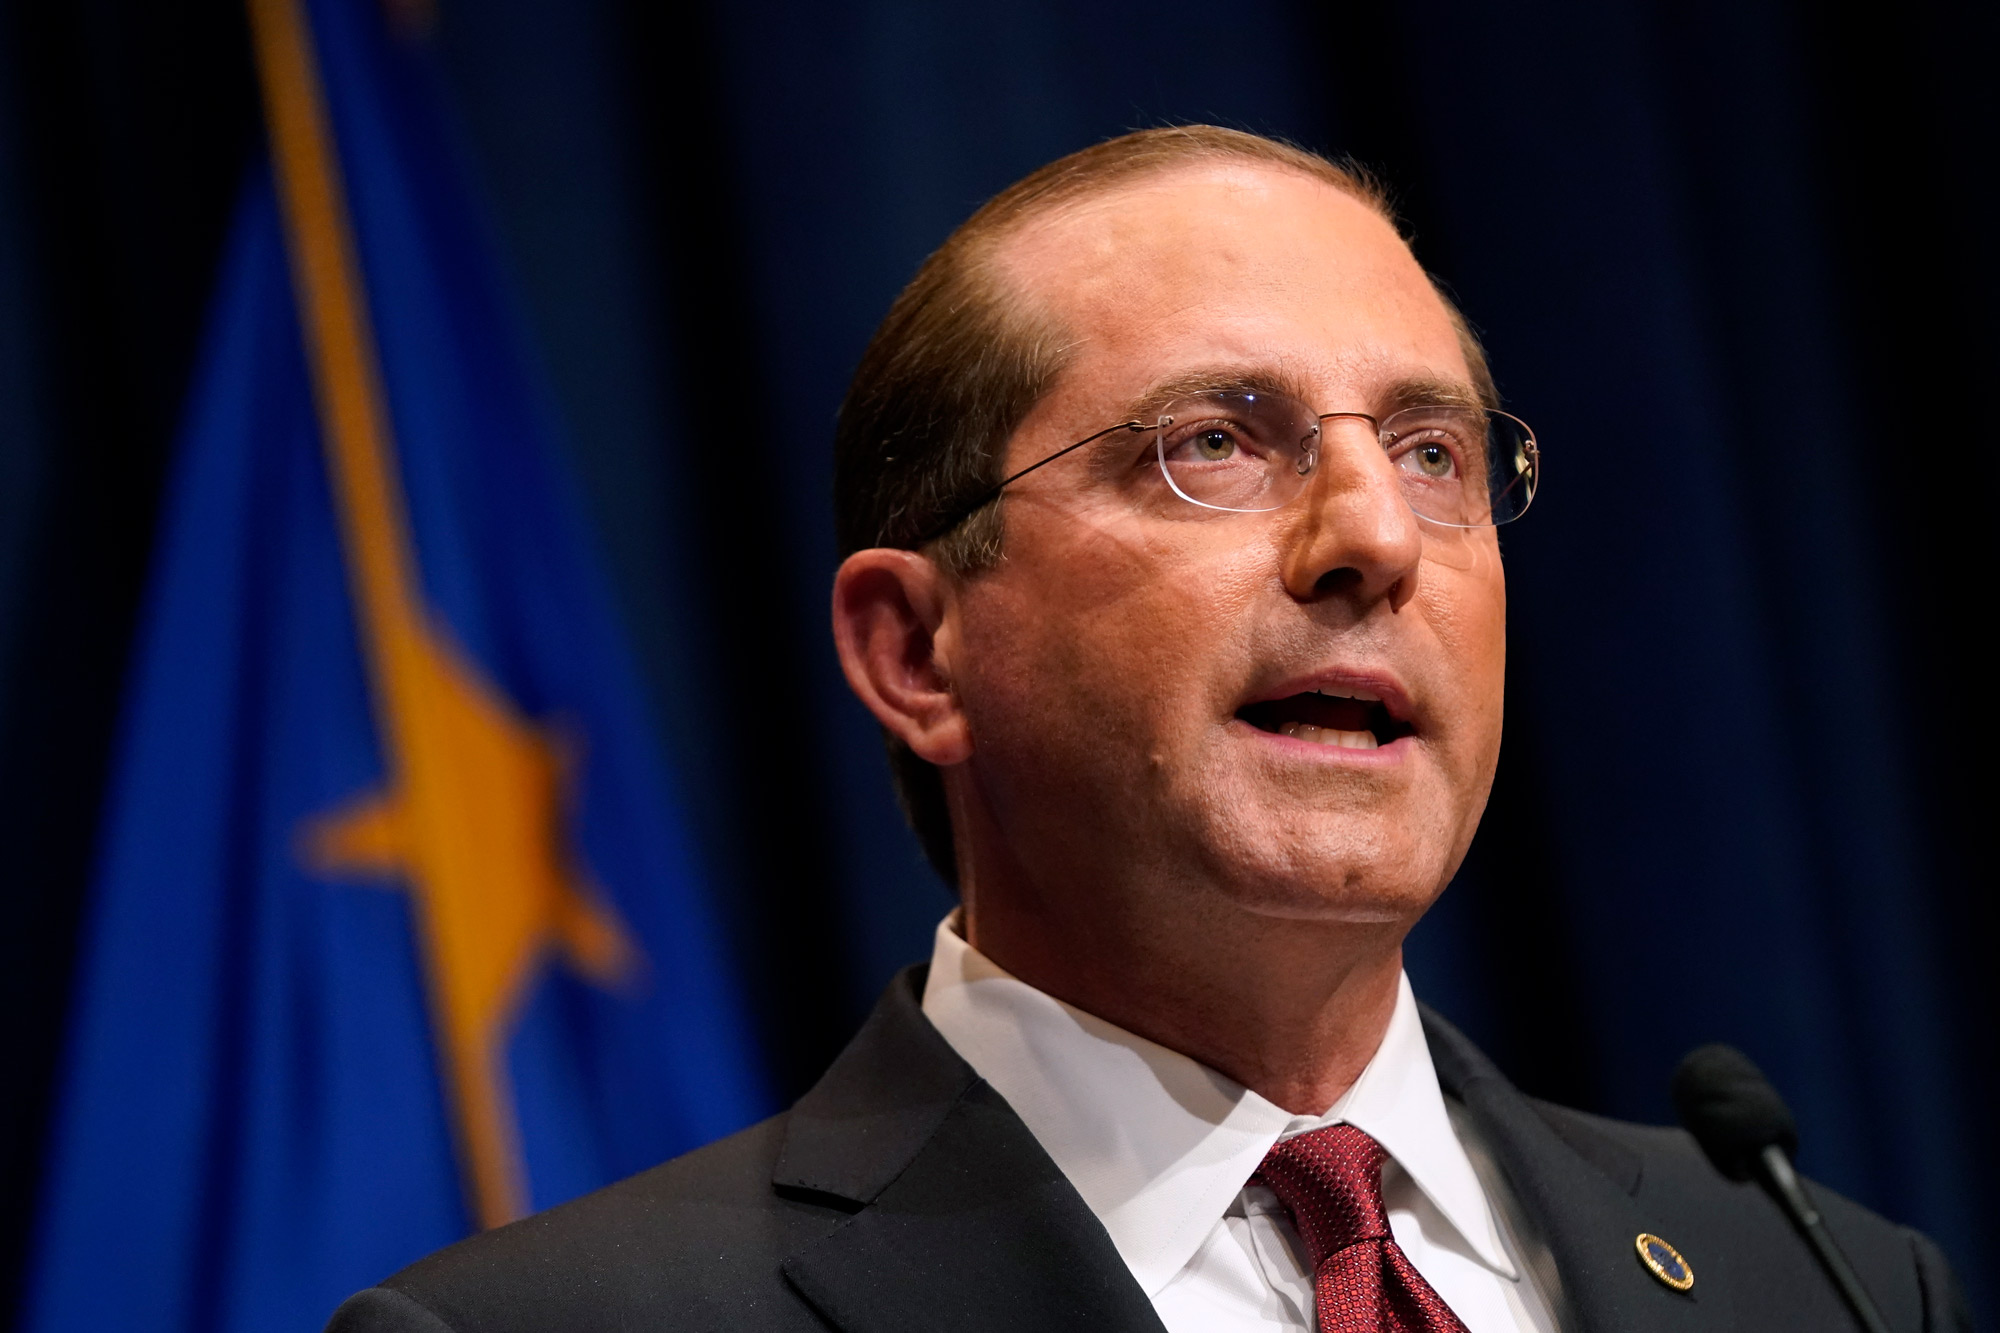 Health and Human Services Secretary Alex Azar speaks during a news conference on January 12 in Washington, DC.